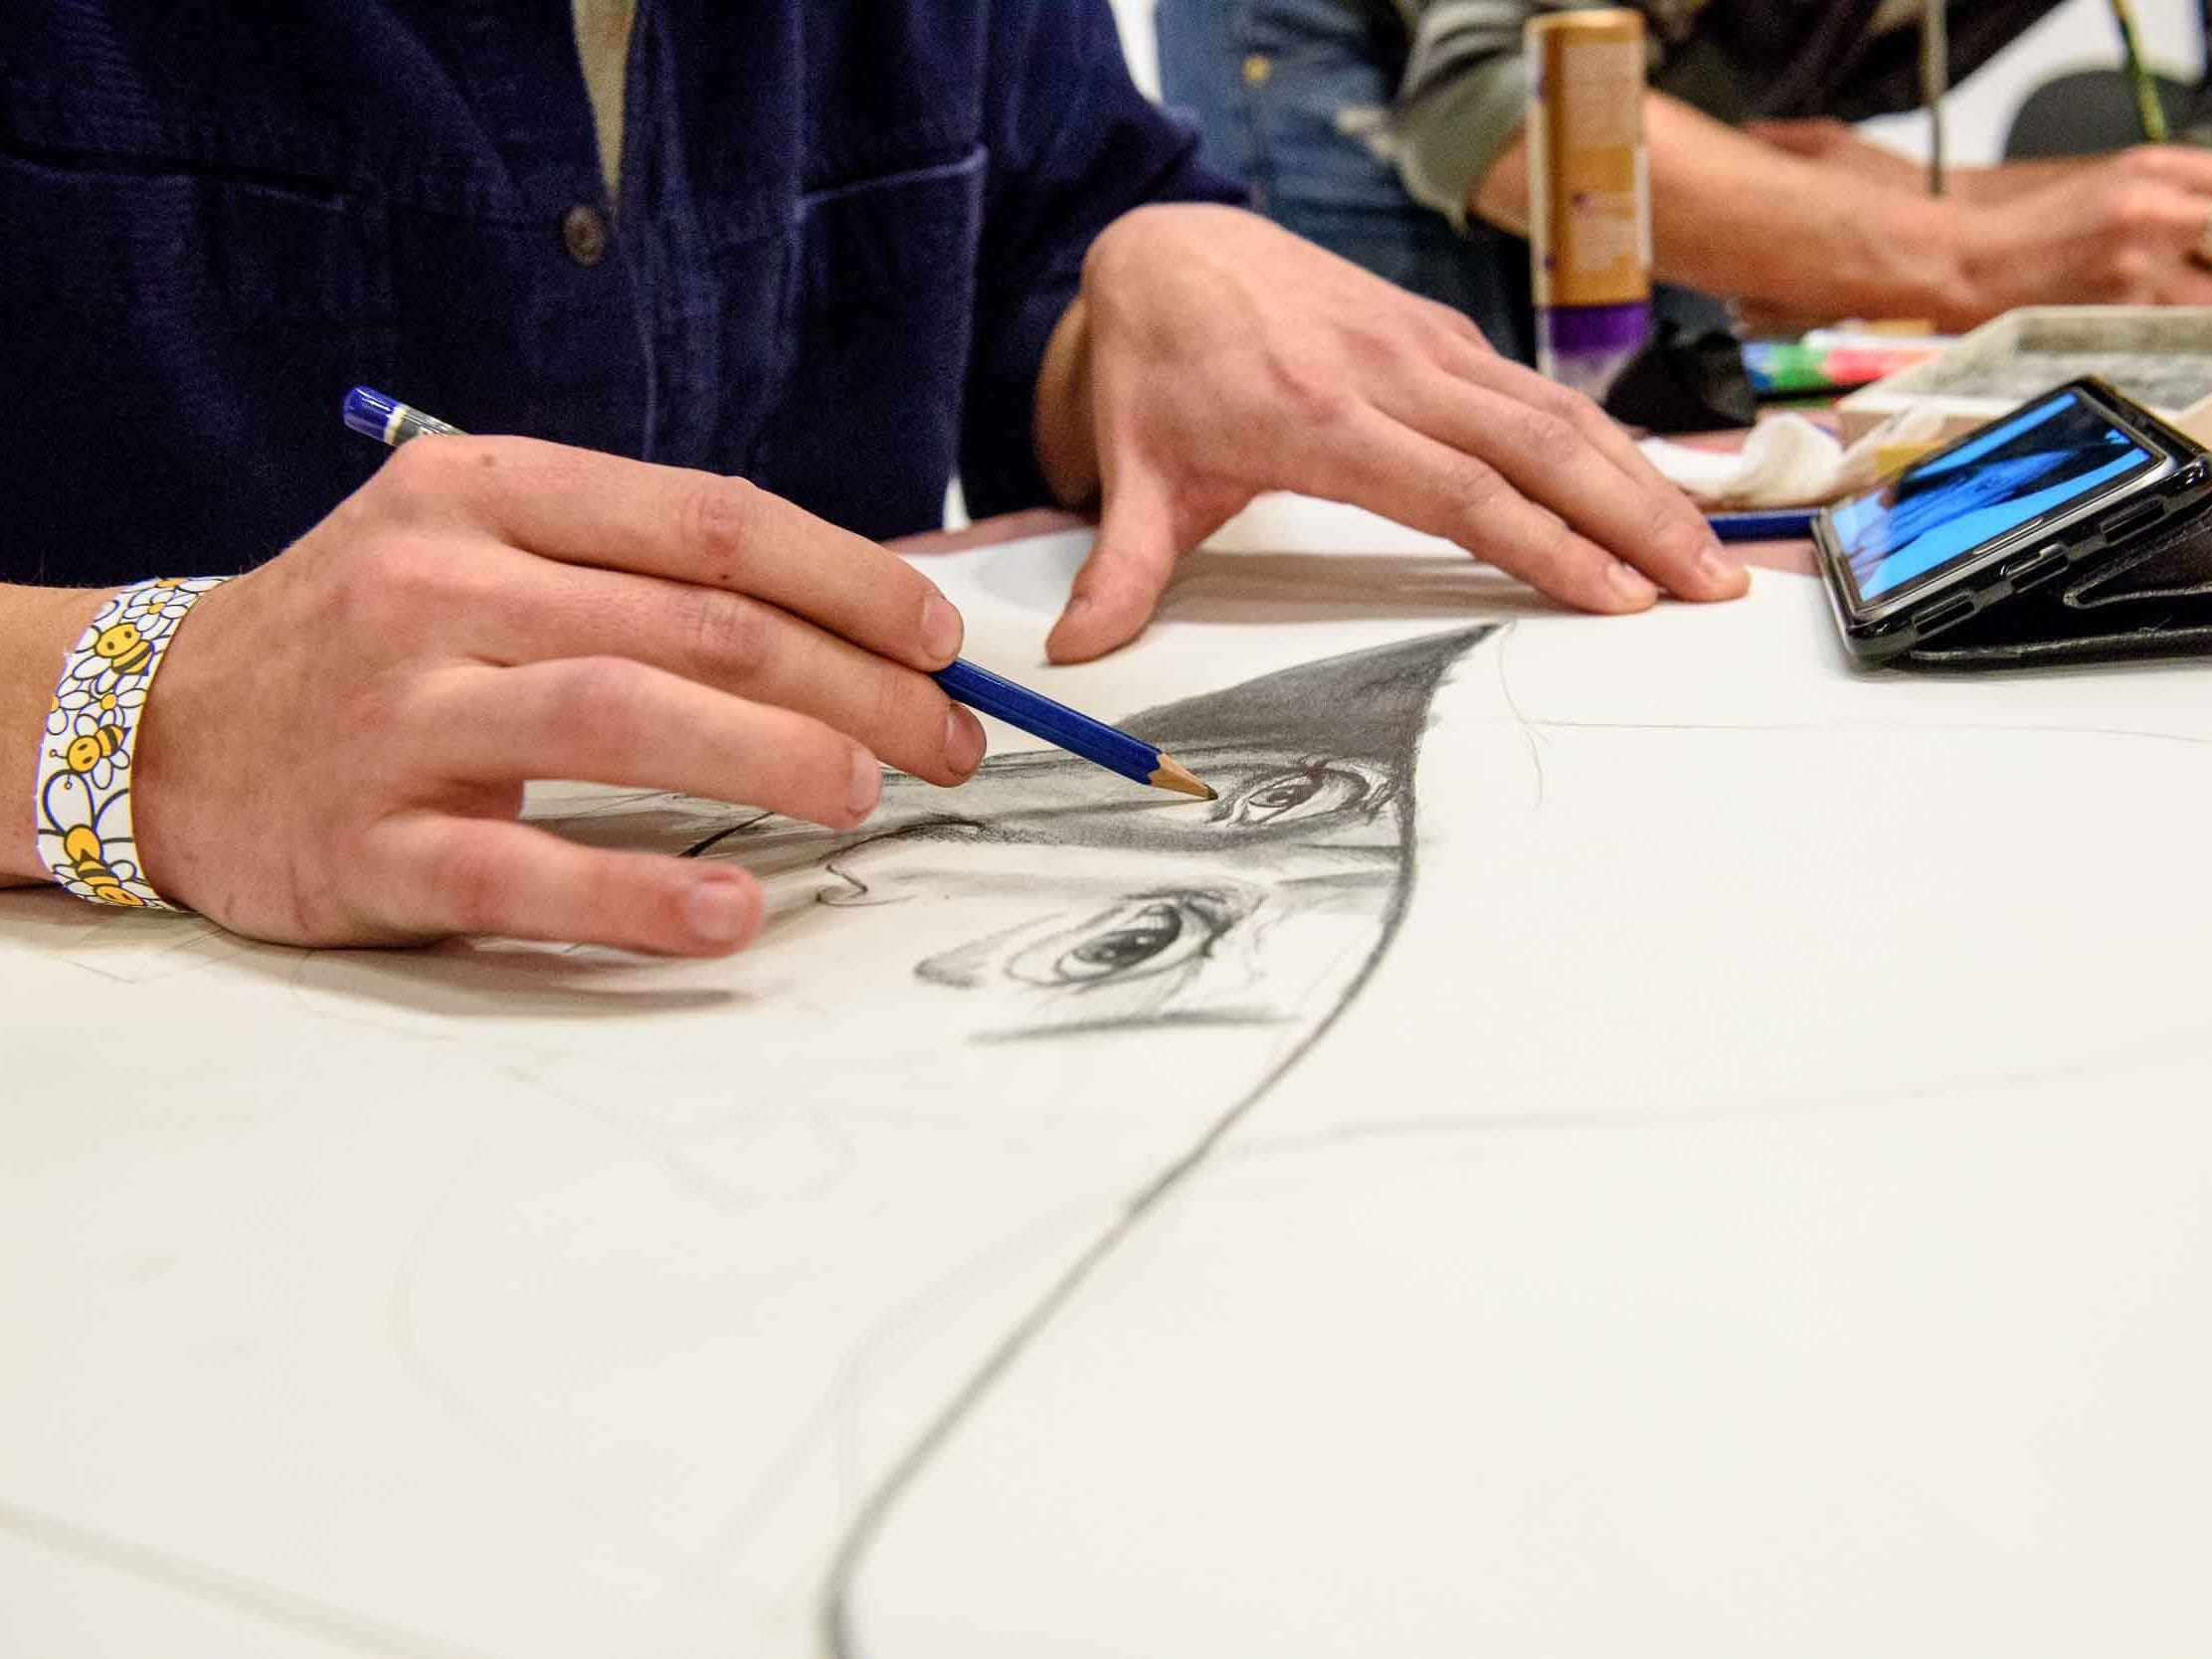 MOCAD's annual public fundraiser Monster Drawing Rally 2018 was held on December 14, 2018. The event consisted of three, one-hour rounds that each feature 100 different Detroit based artists drawing simultaneously. The completed drawings were displayed and available for $40.